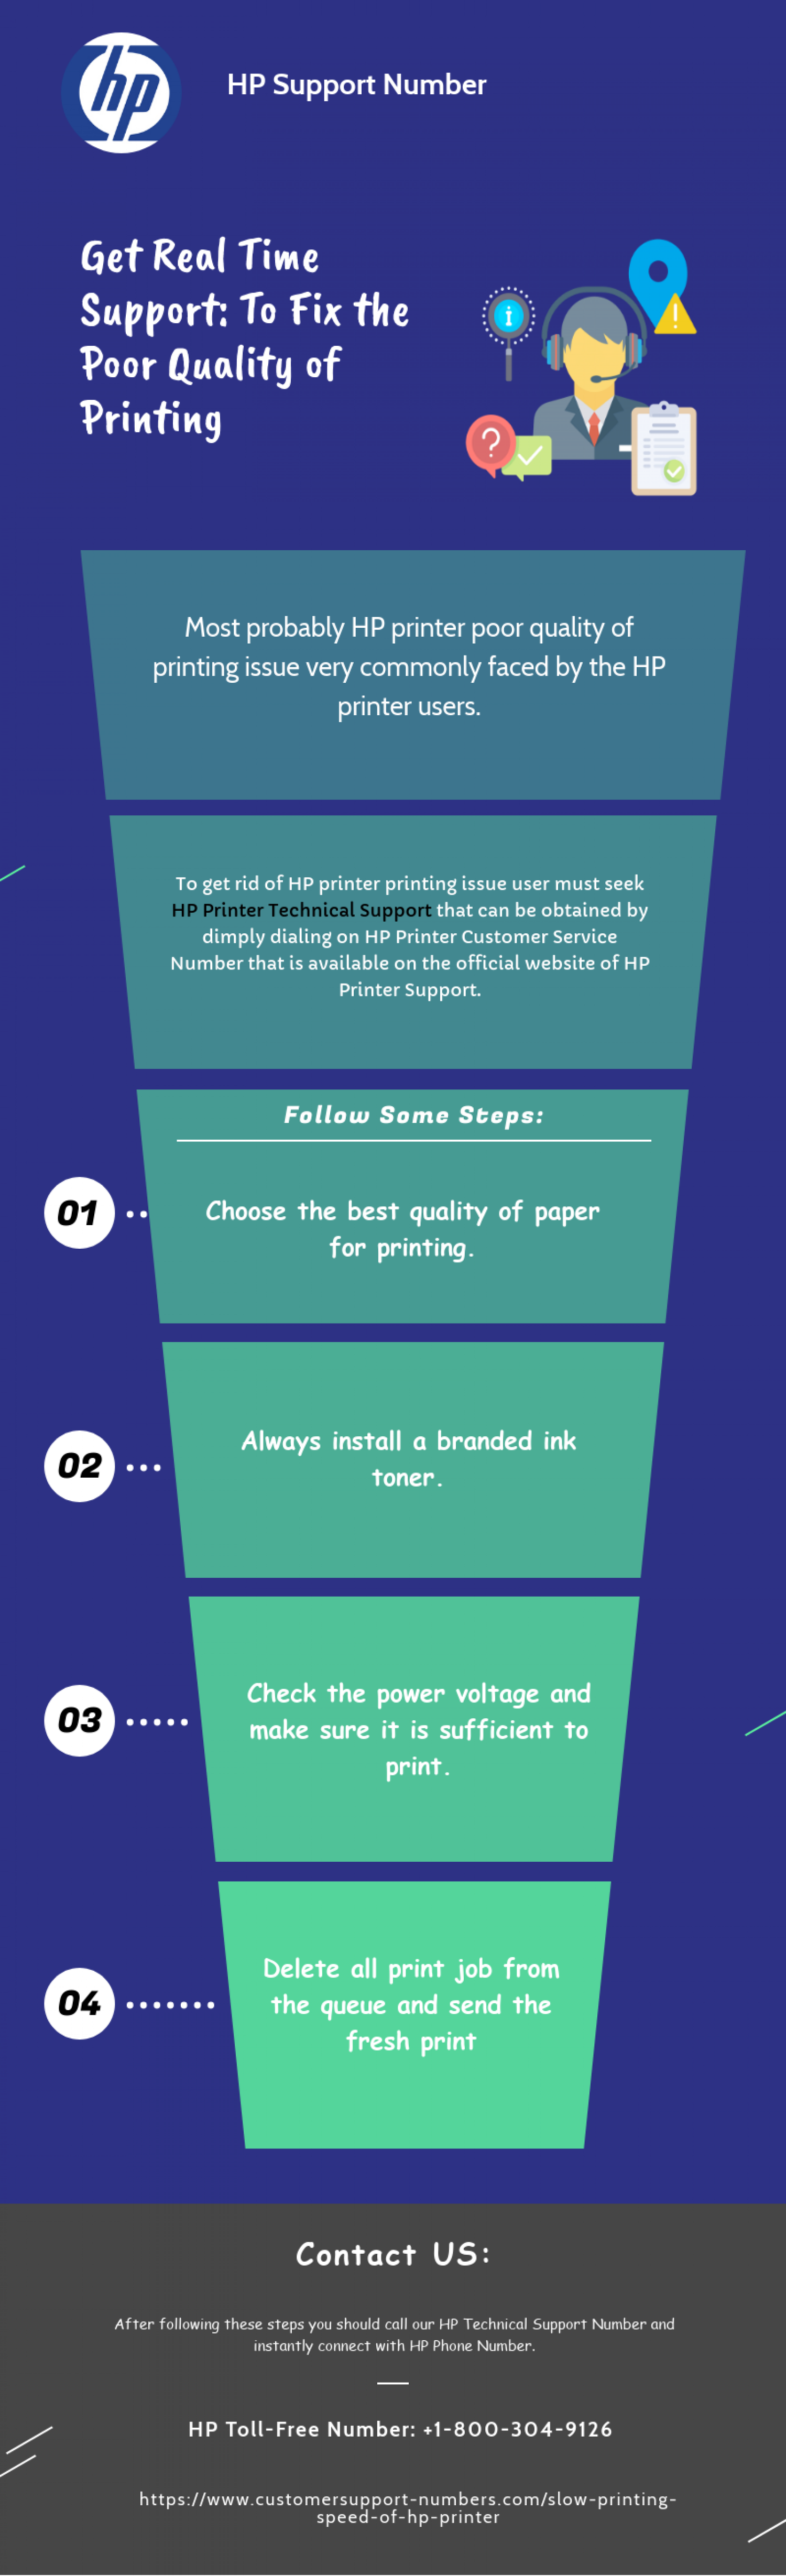 HP Printer Support Number: To Fix the Poor Quality of Printing Infographic